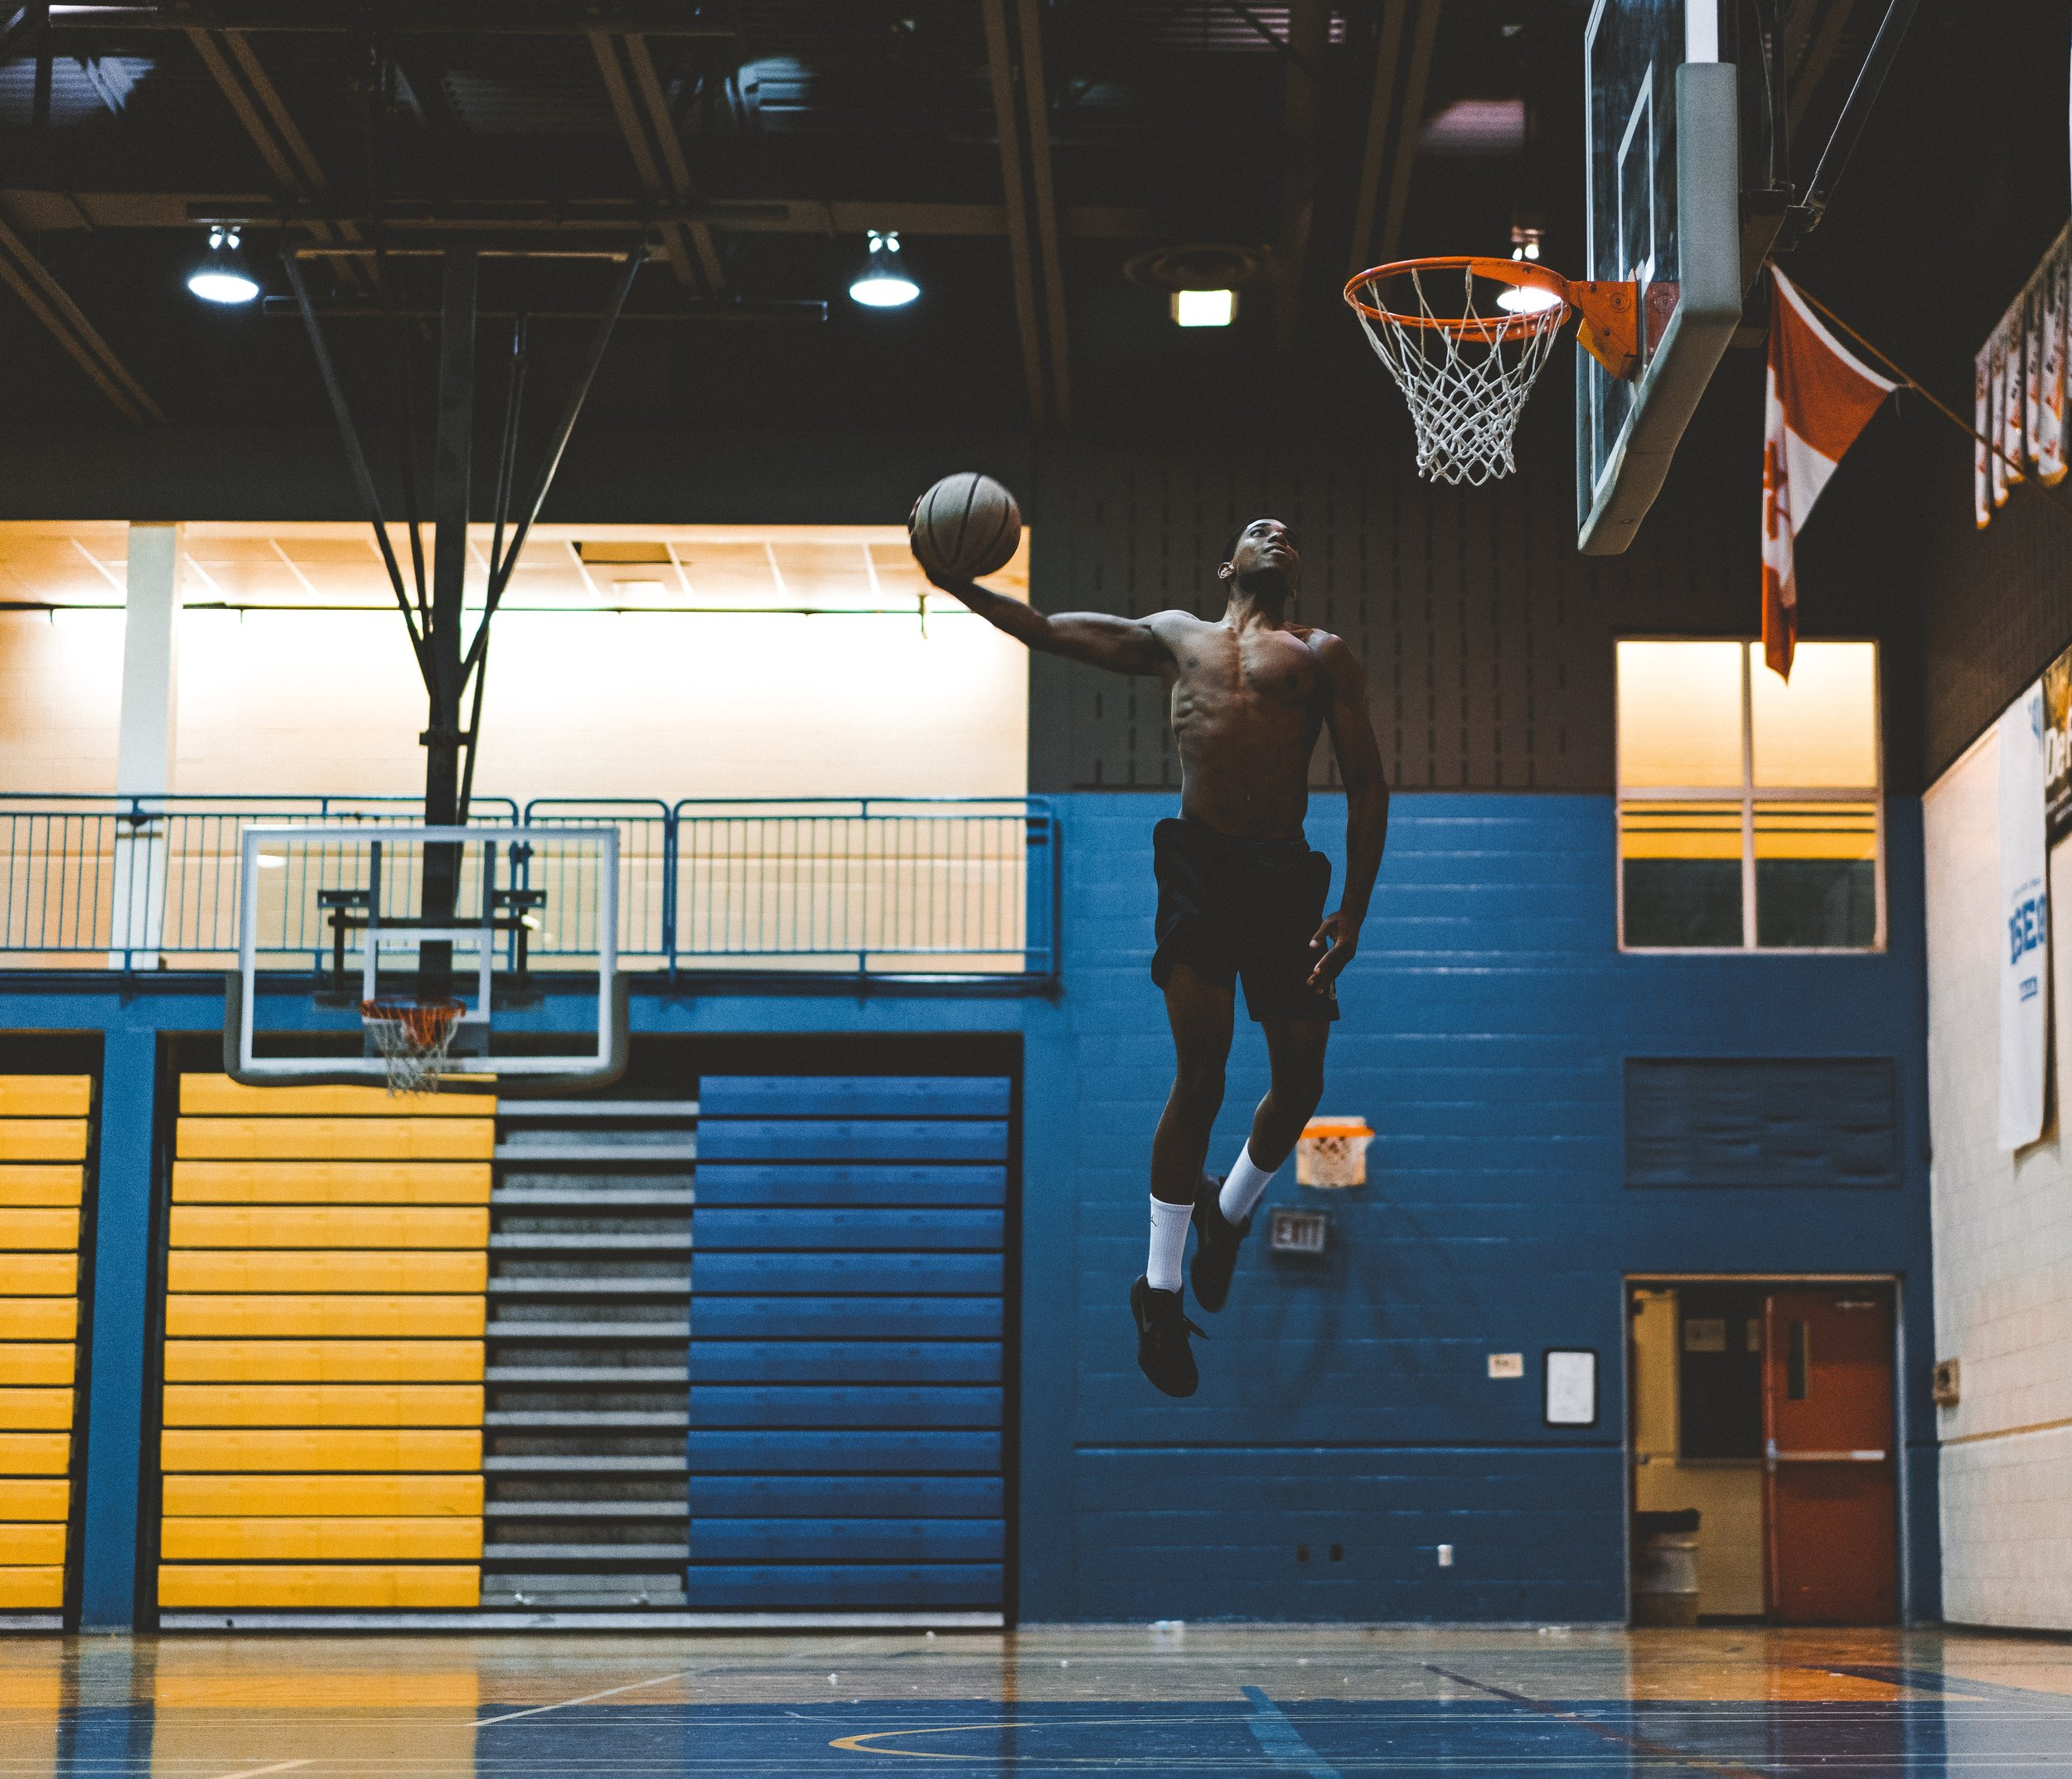 Basketball - The Youth Academy